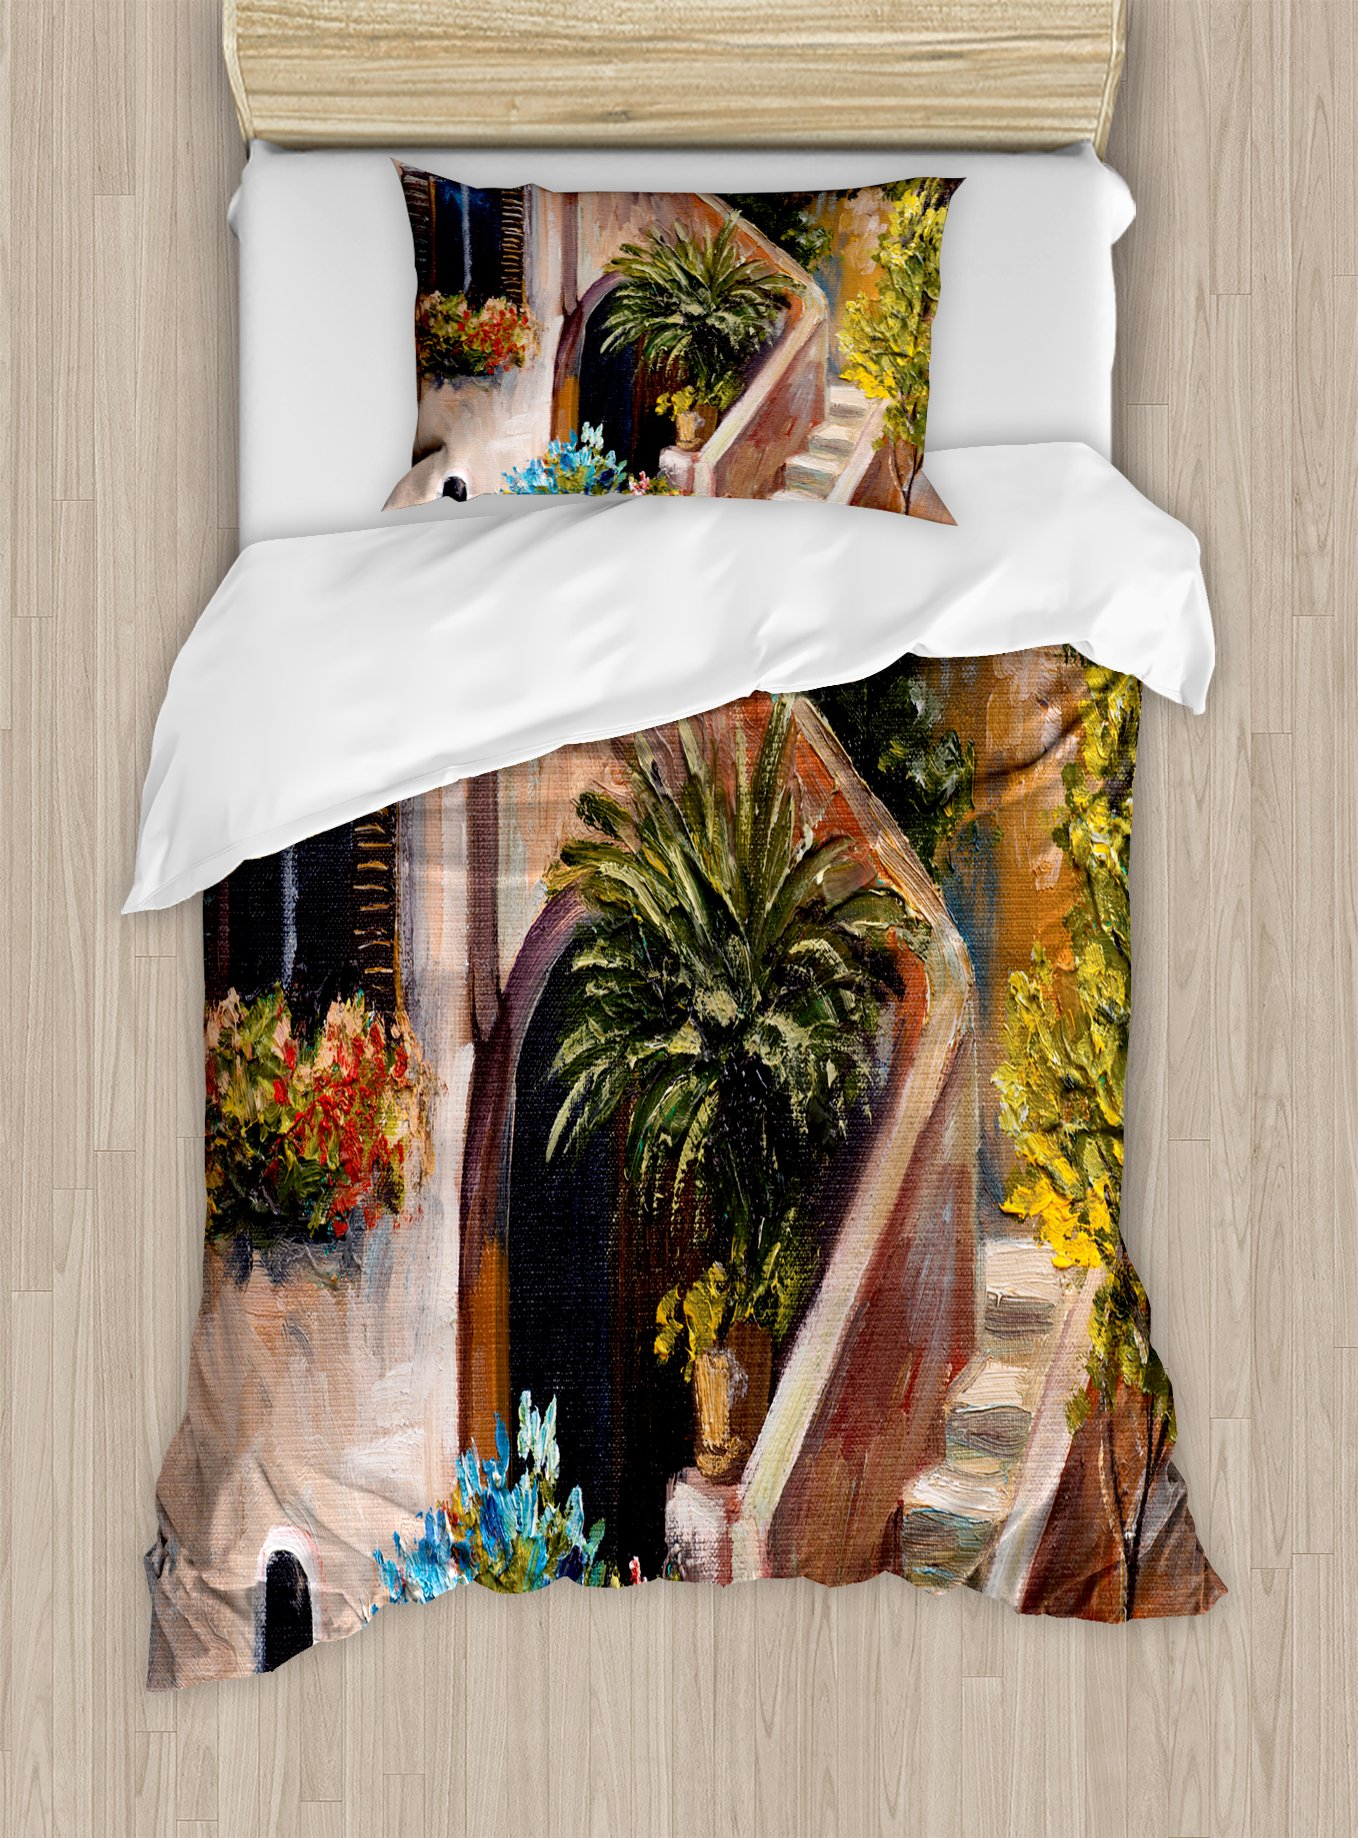 Ambesonne Rustic Duvet Cover Set Twin Size, Terrace Flowers and Garden House Greece with Rustic Window Oil Painting, Decorative 2 Piece Bedding Set with 1 Pillow Sham, Green Brown and Peach